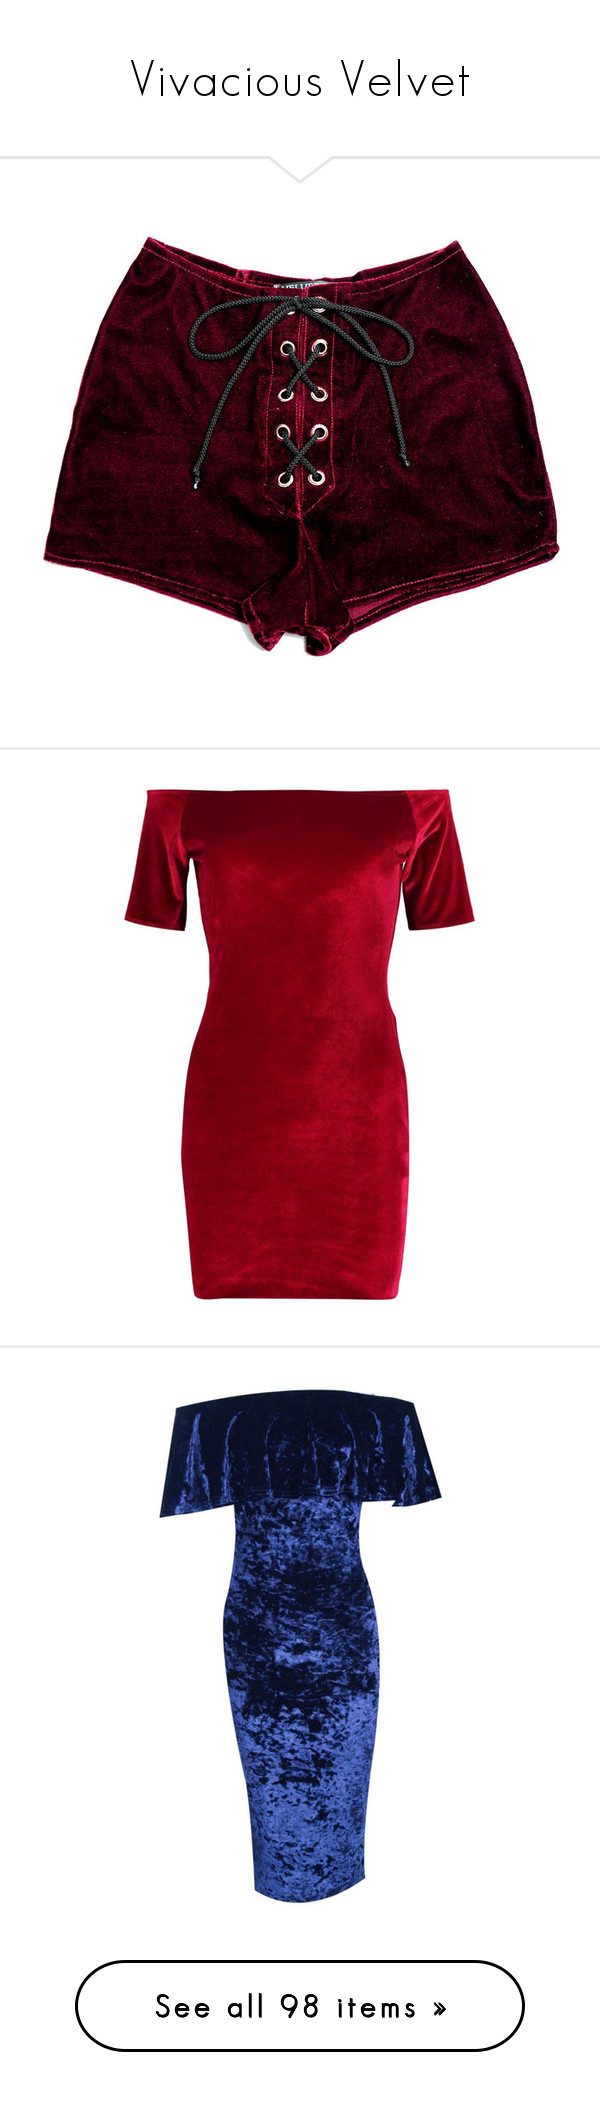 """""""Vivacious Velvet"""" by juliasmiles ❤ liked on Polyvore featuring shorts, bottoms, pants, red, stretch shorts, eyelet shorts, dragon shorts, red velvet shorts, red shorts and dresses"""